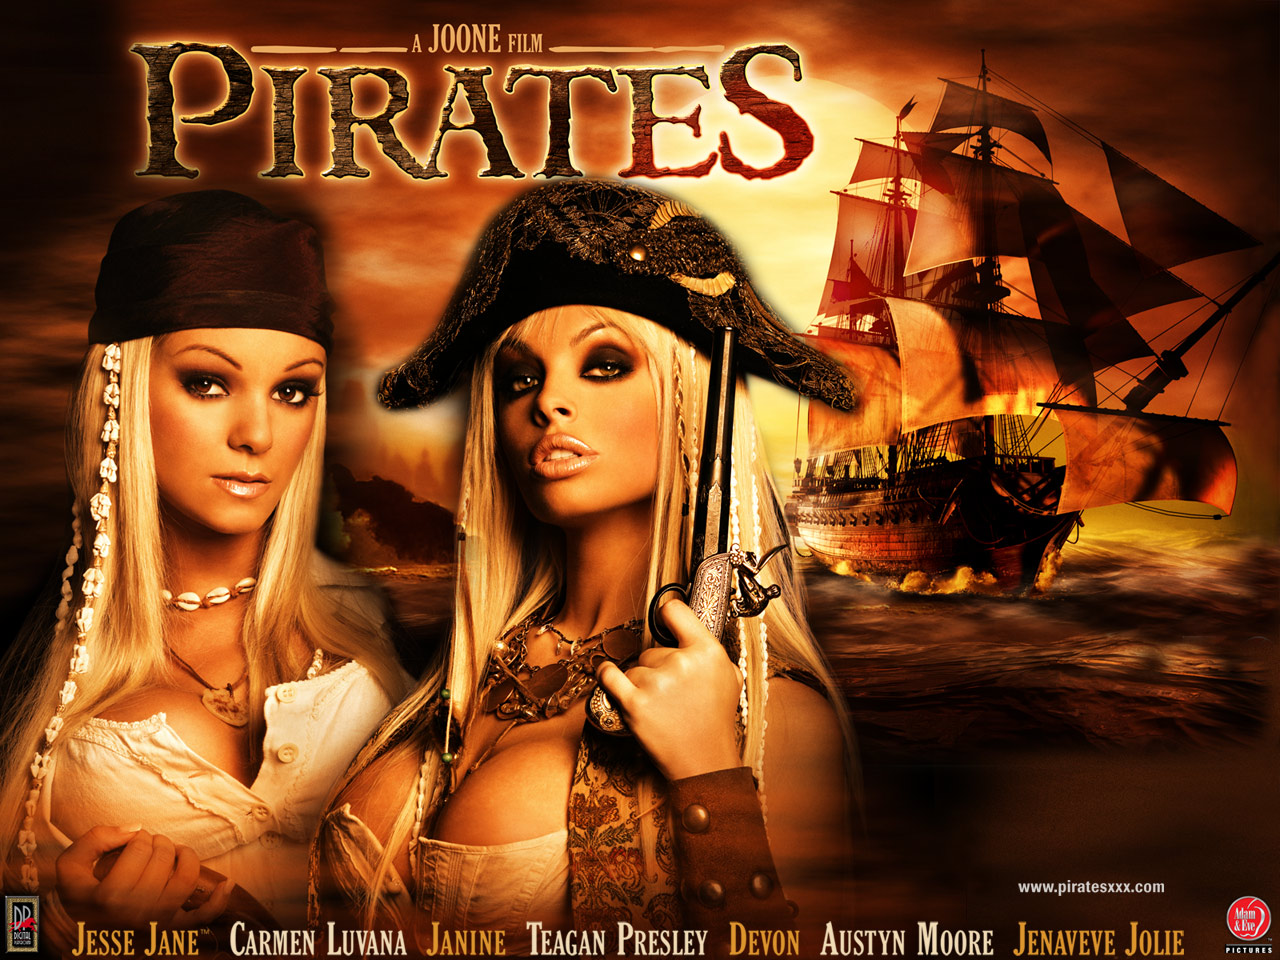 Download video porn pirates sexy clips